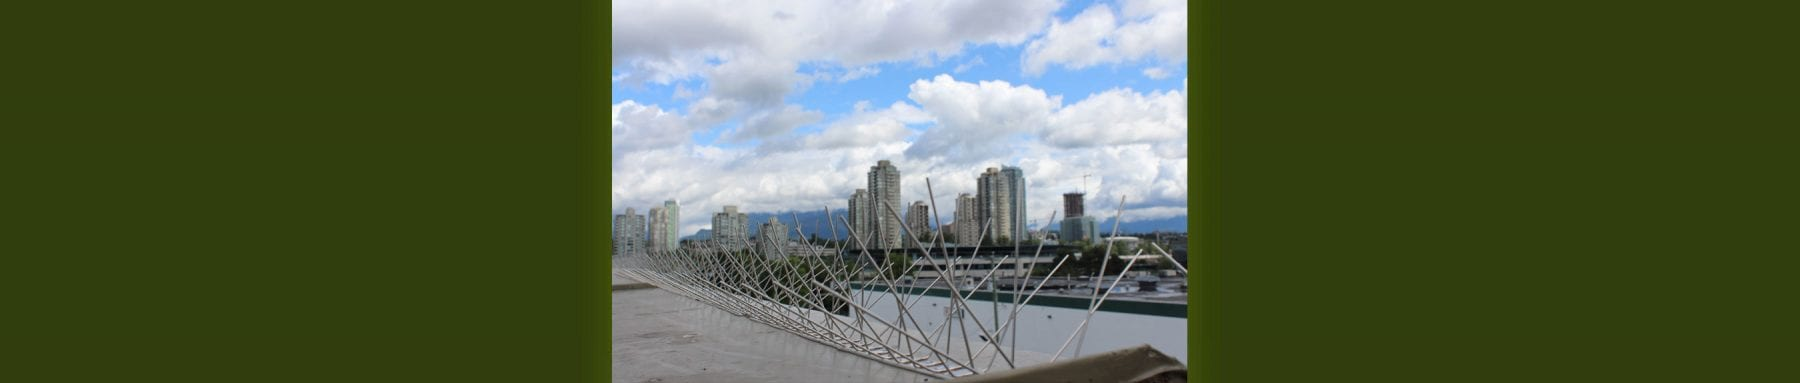 10-bird-control-spikes-in-vancouver-bc-1-(1)